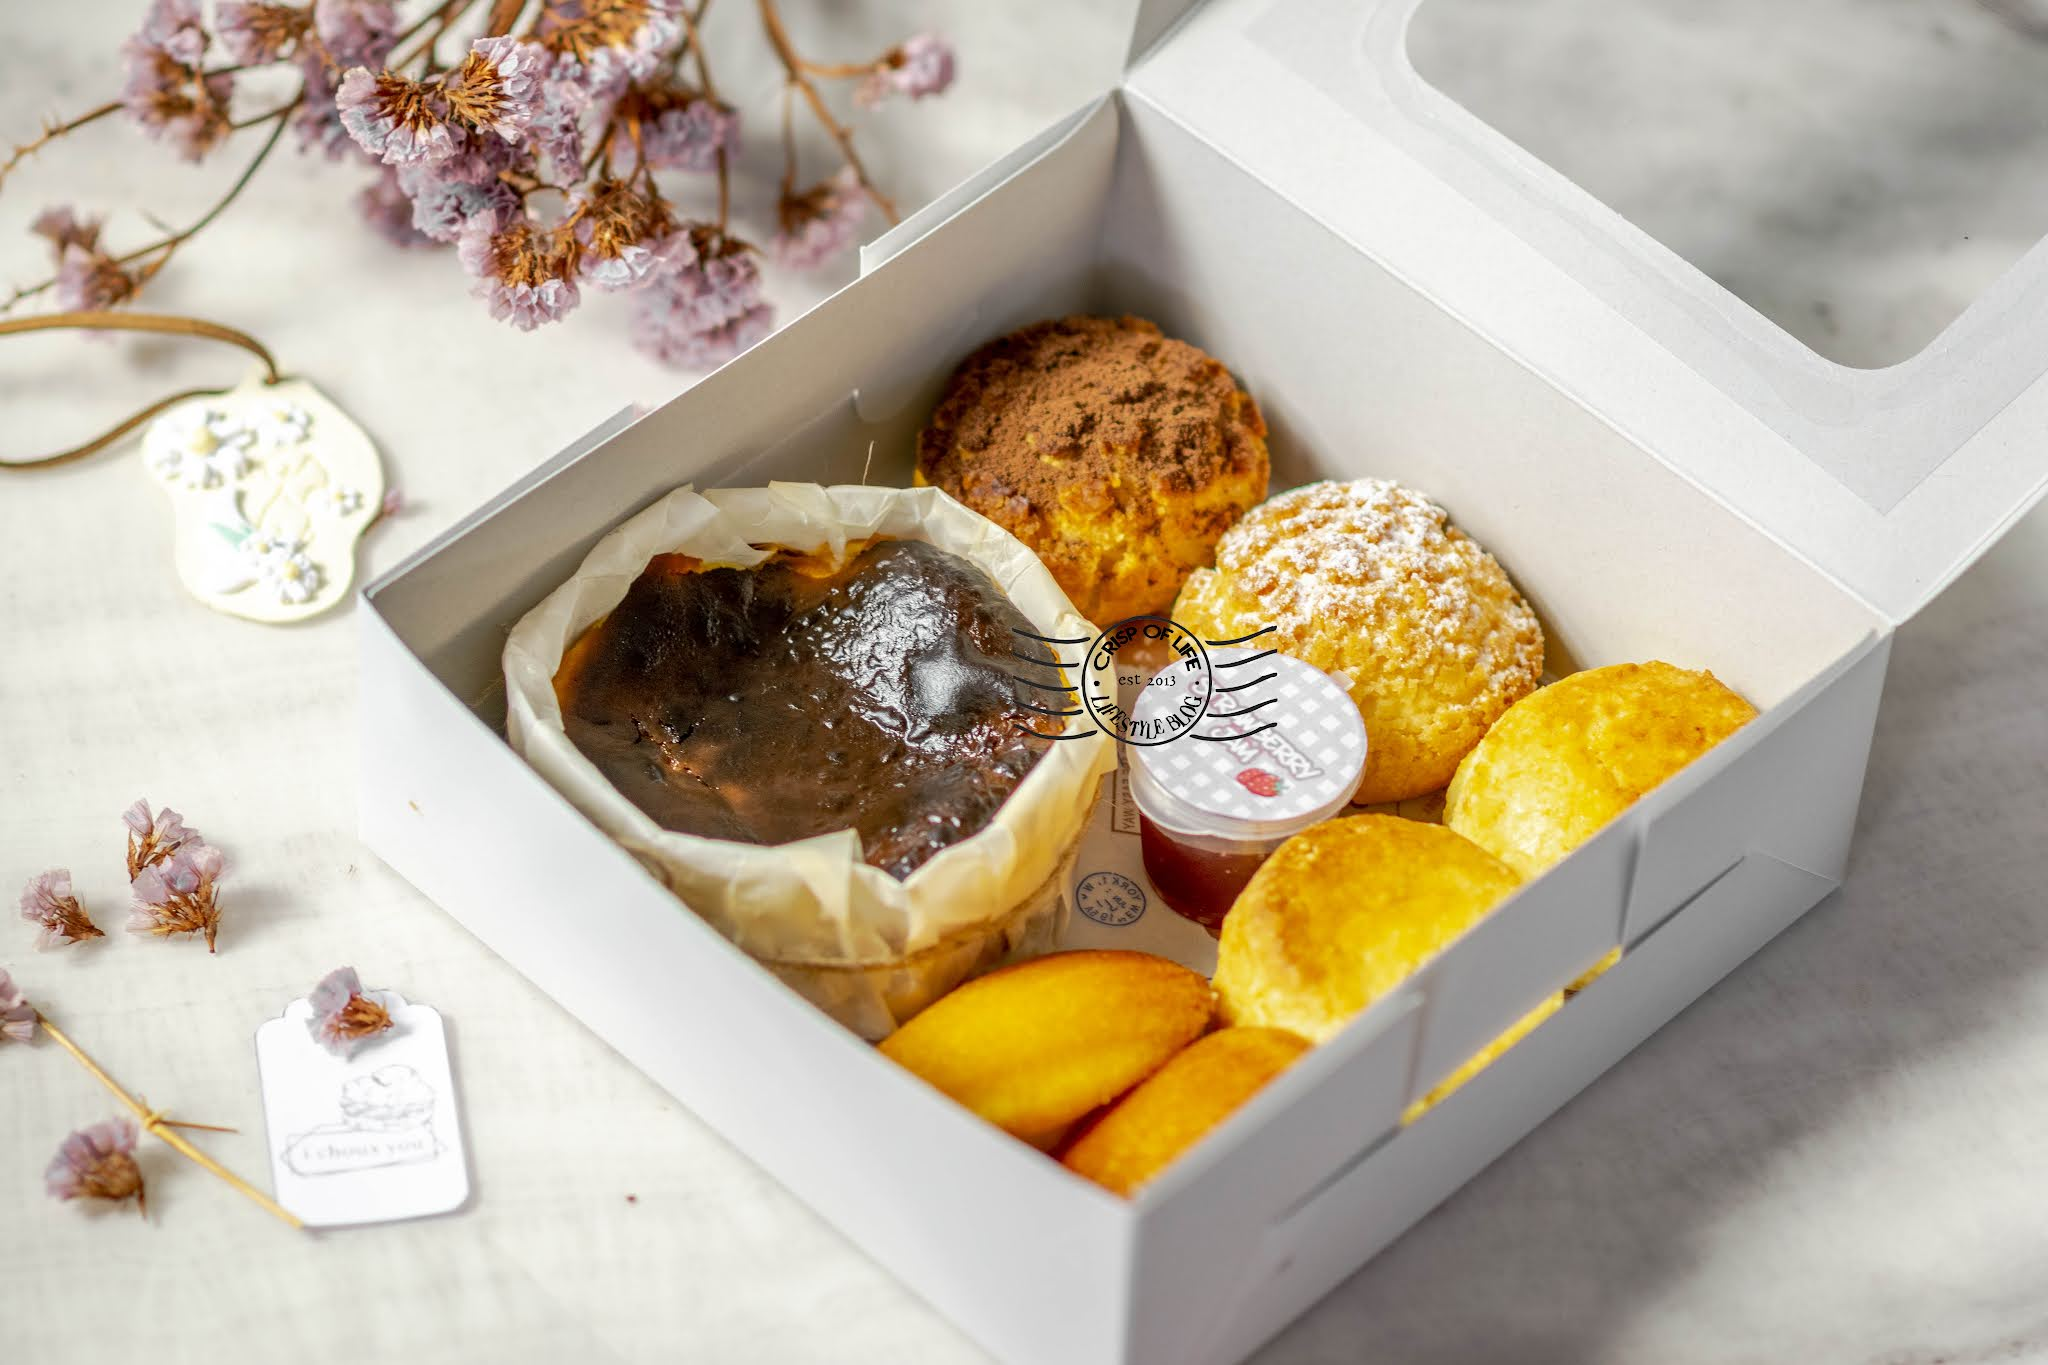 Exquisite Afternoon Afternoon Tea Set For RM 30 from I Choux You